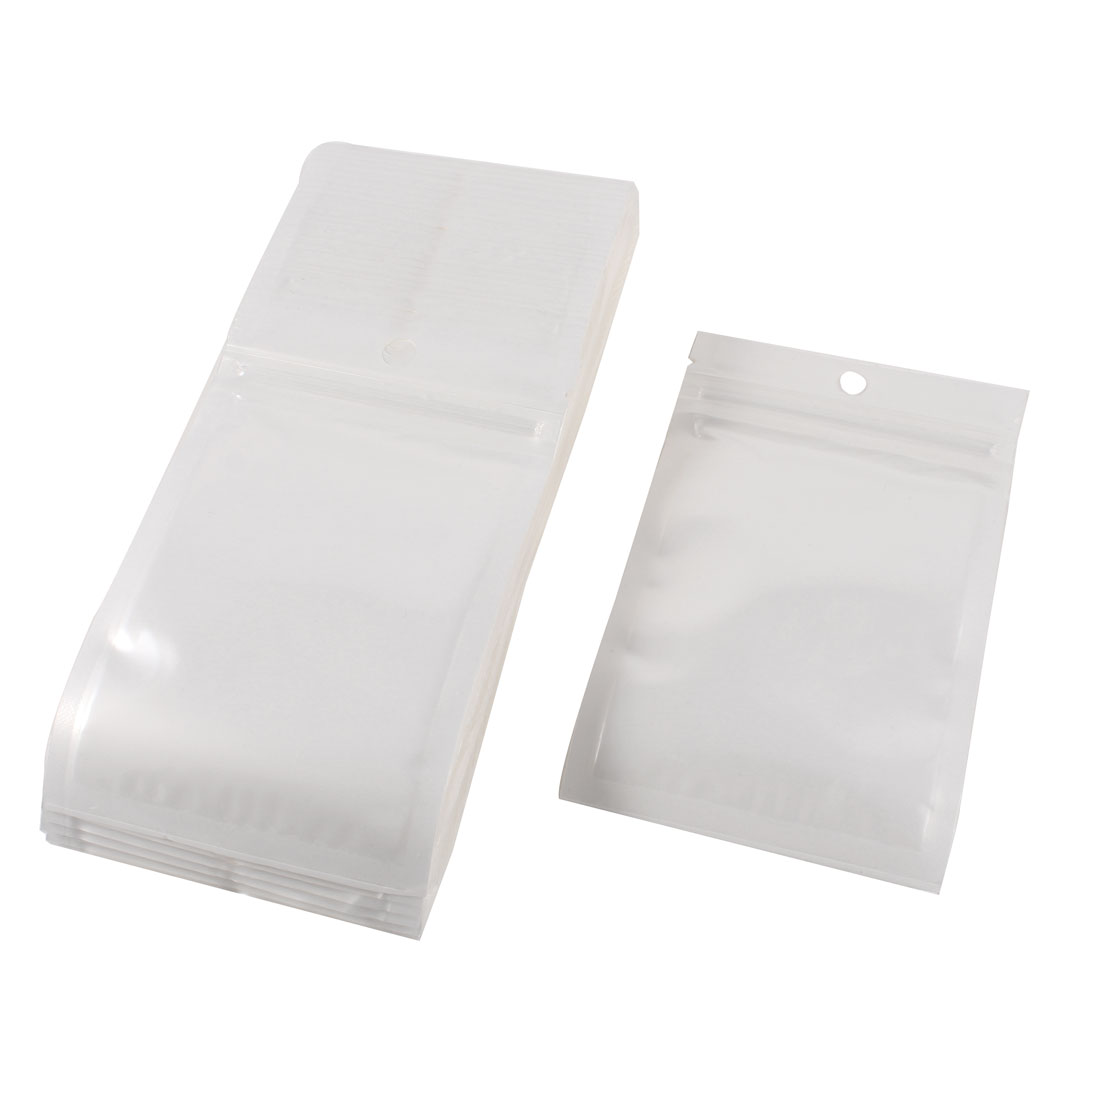 Plastic Ziplock Sealing Seal Bag 8cmx13cm Mobile Spare Parts White Clear 100pcs